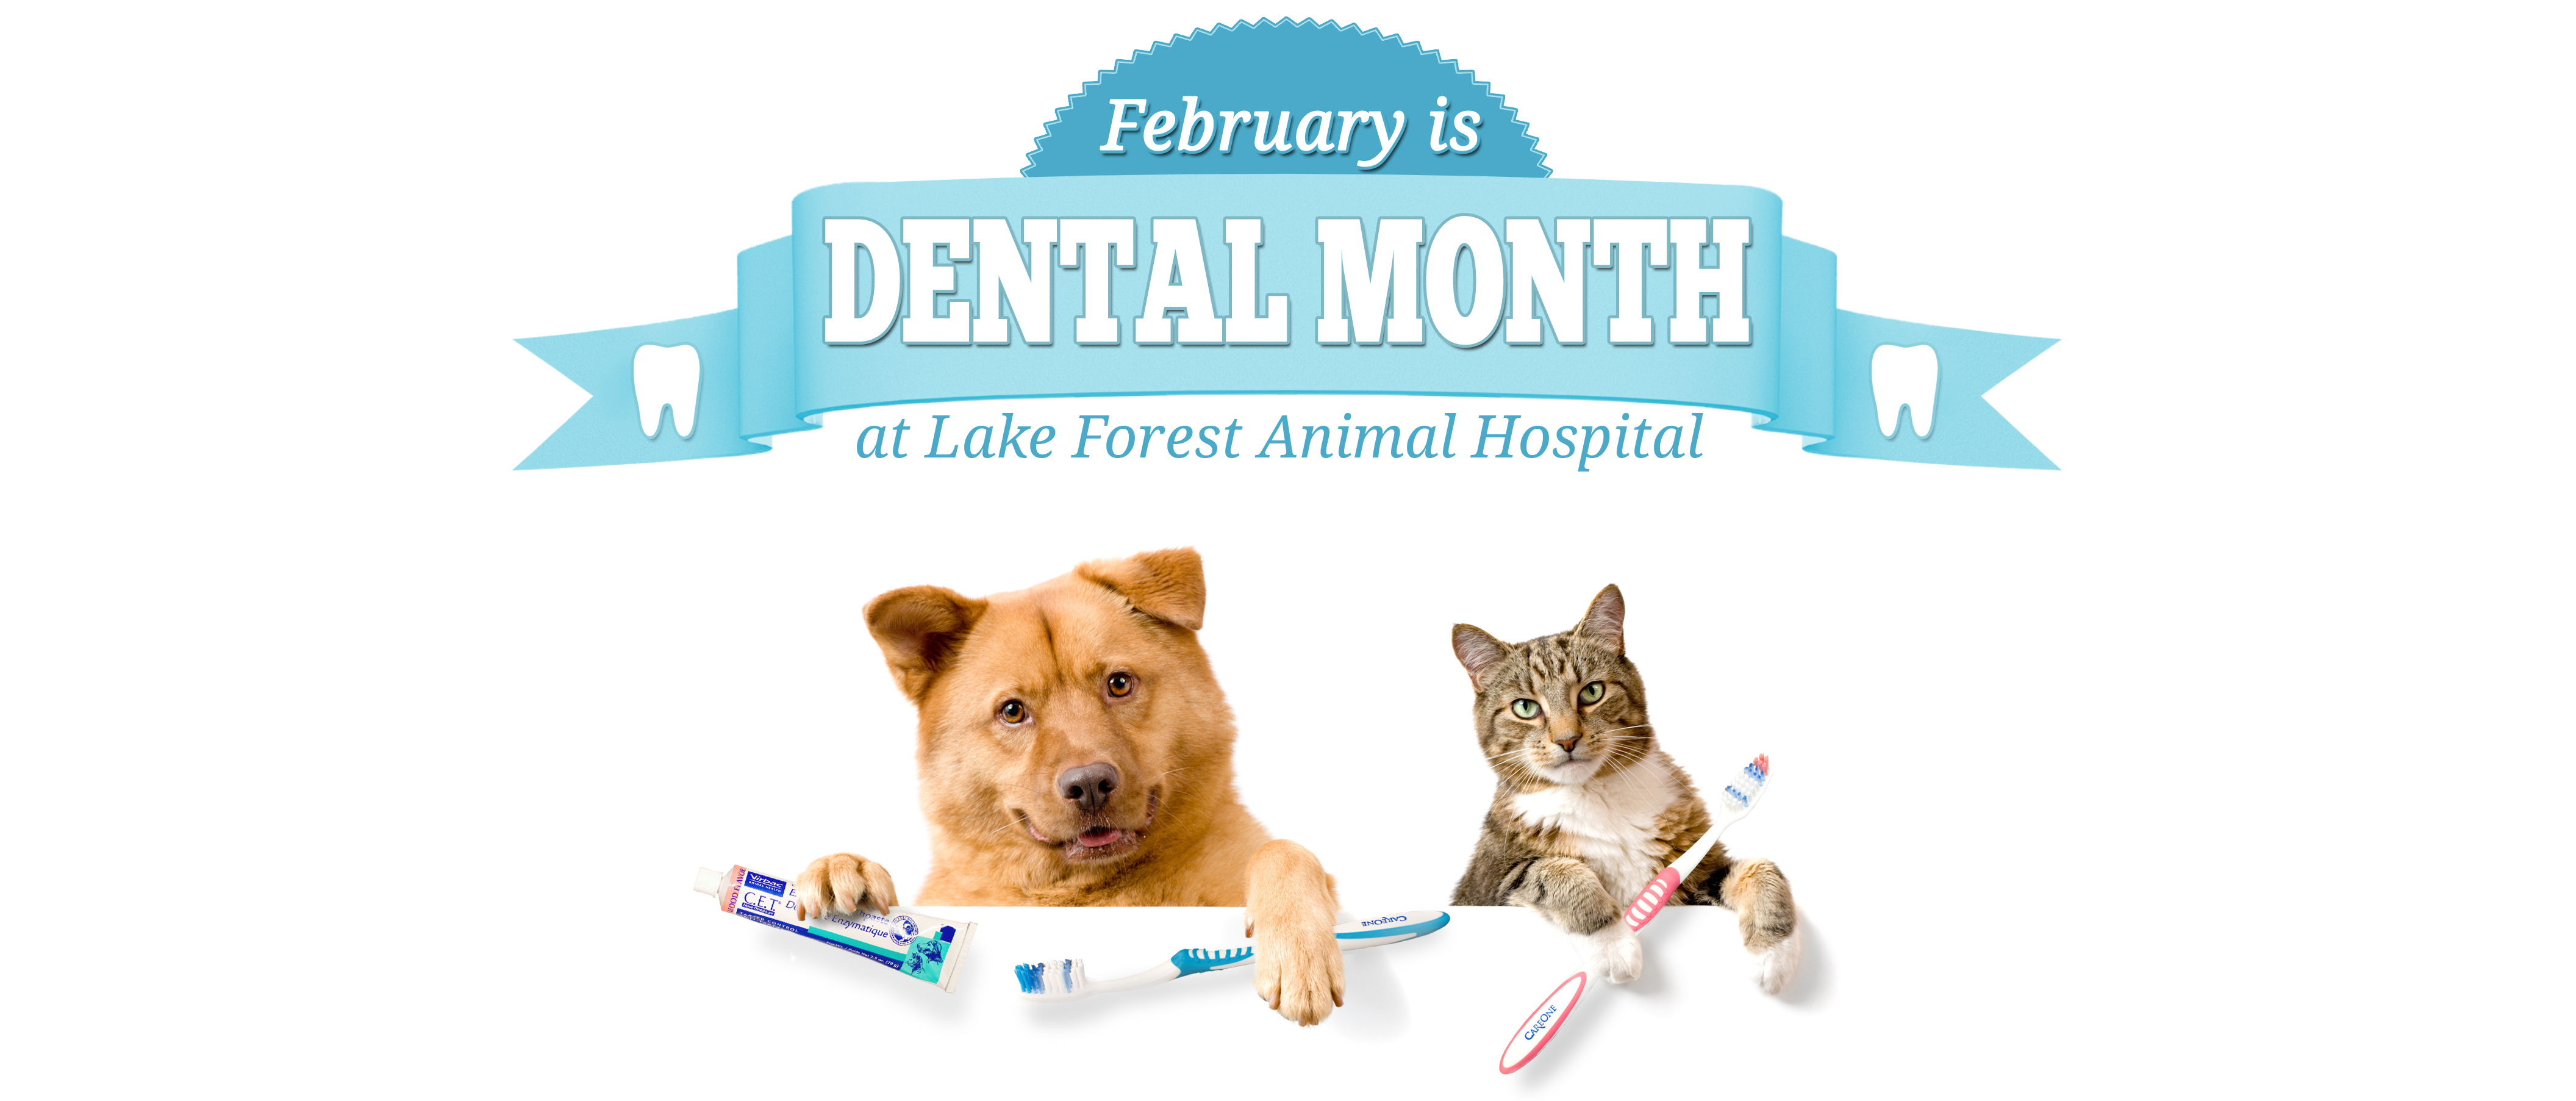 Our National Pet Dental Health Month Savings Of 10 Off ALL Services Applies To Any Cleaning Scheduled During February 2017